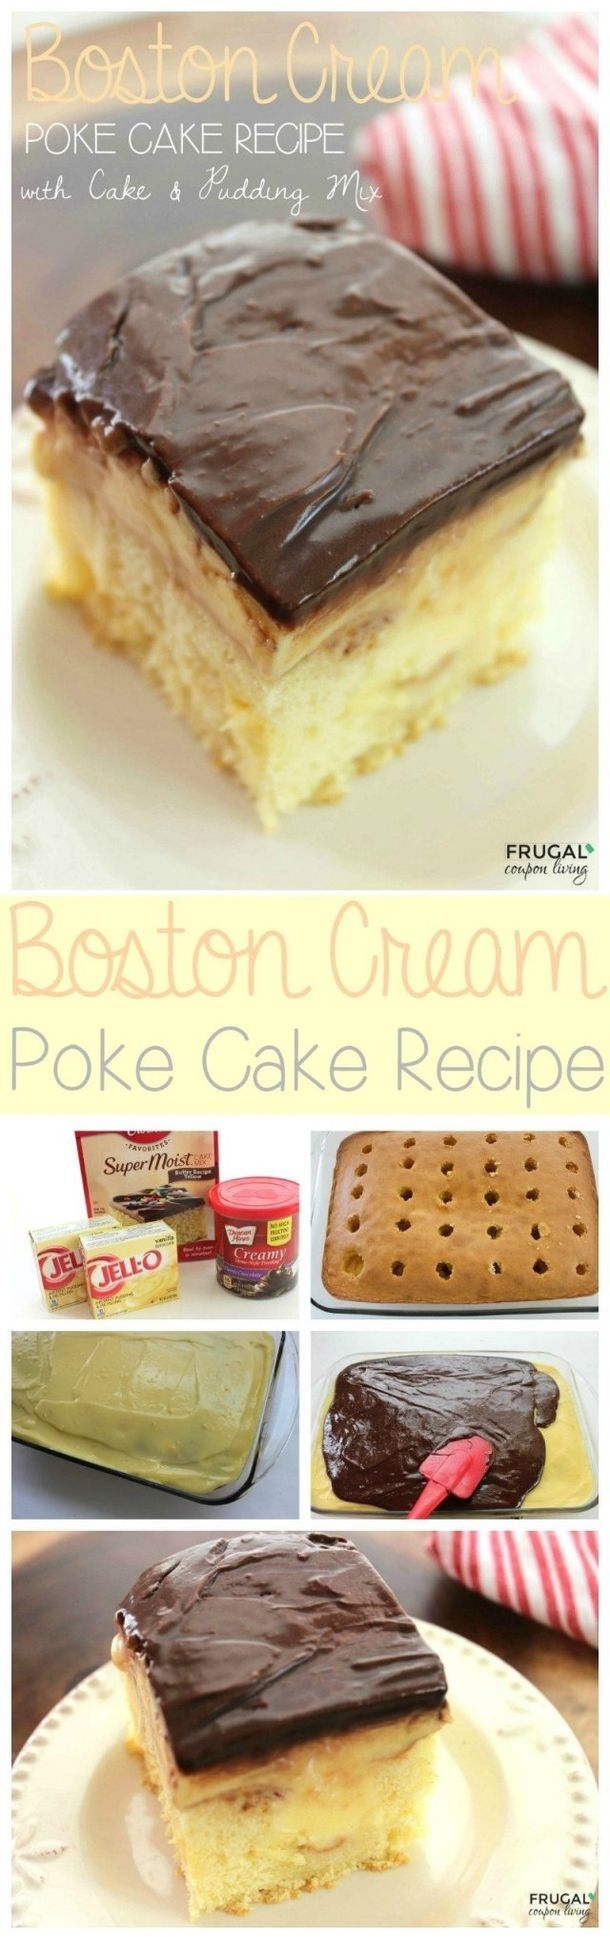 Poke cake allows you to mix and match some flavors to create some seriously amazing combinations, that your otherwise bland cake would never have had!